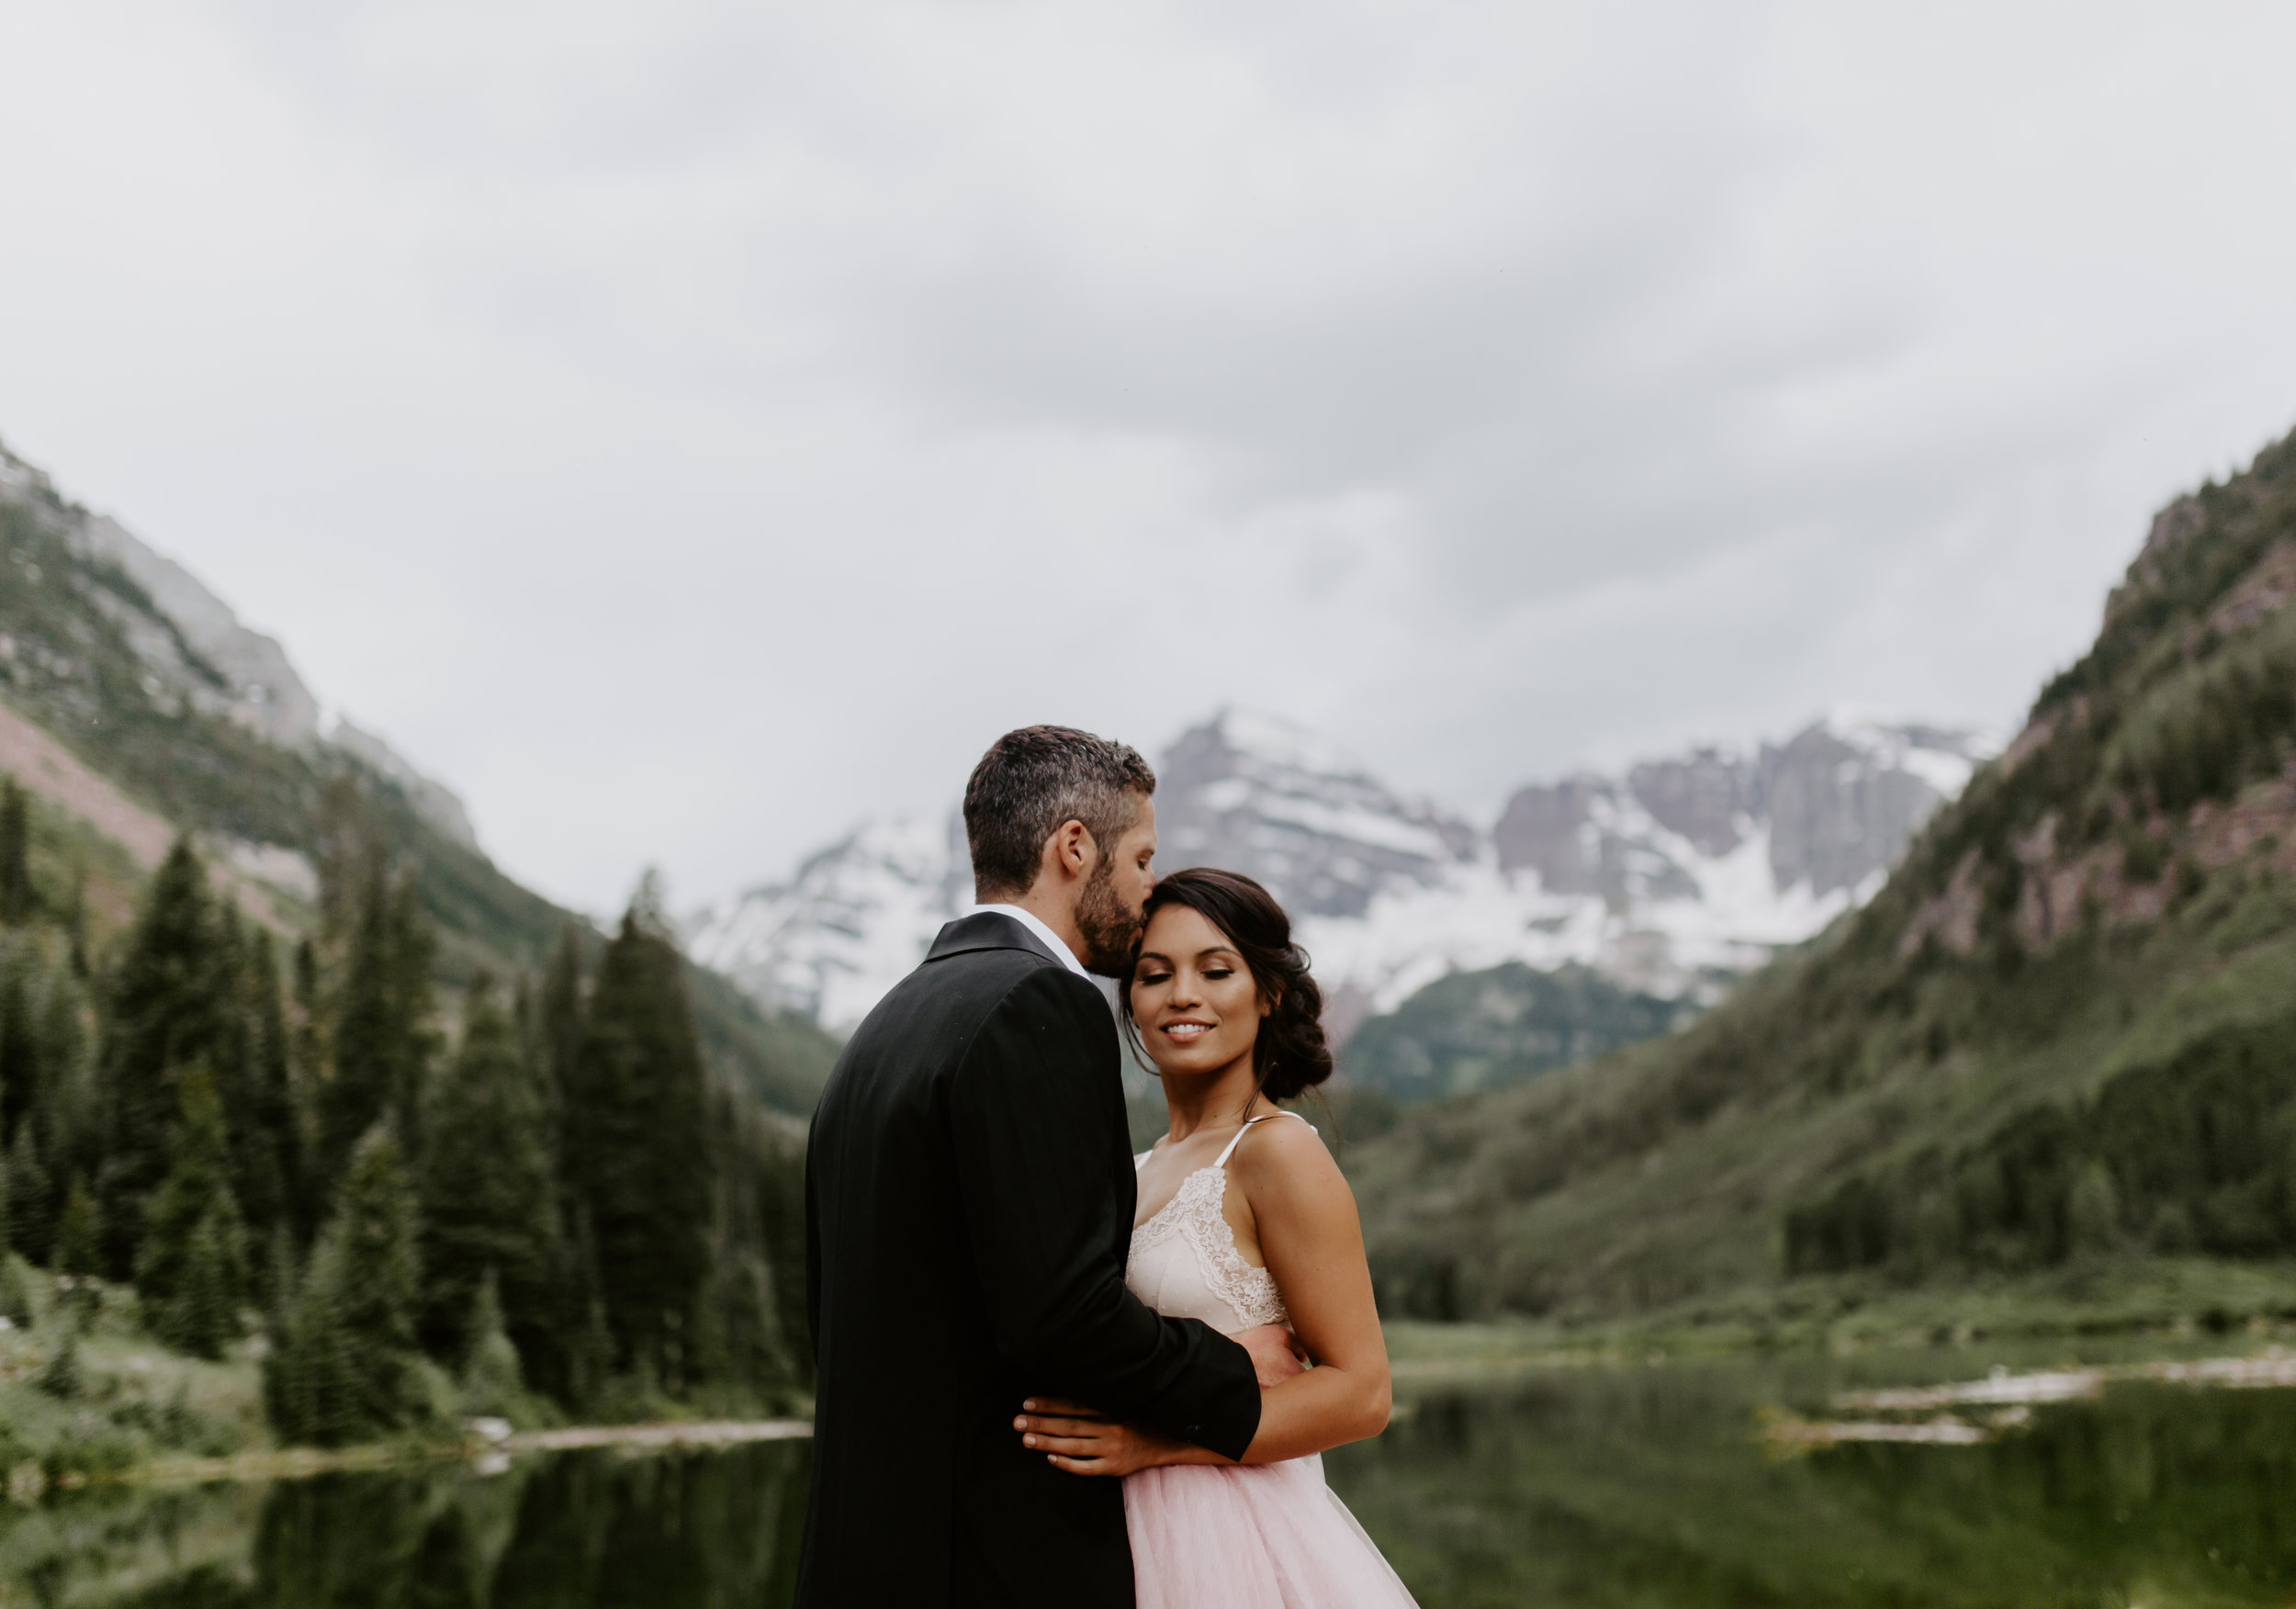 Colorado Styled Shoot - Aspen, Colorado - Meme Urbane Photography_-8.jpg